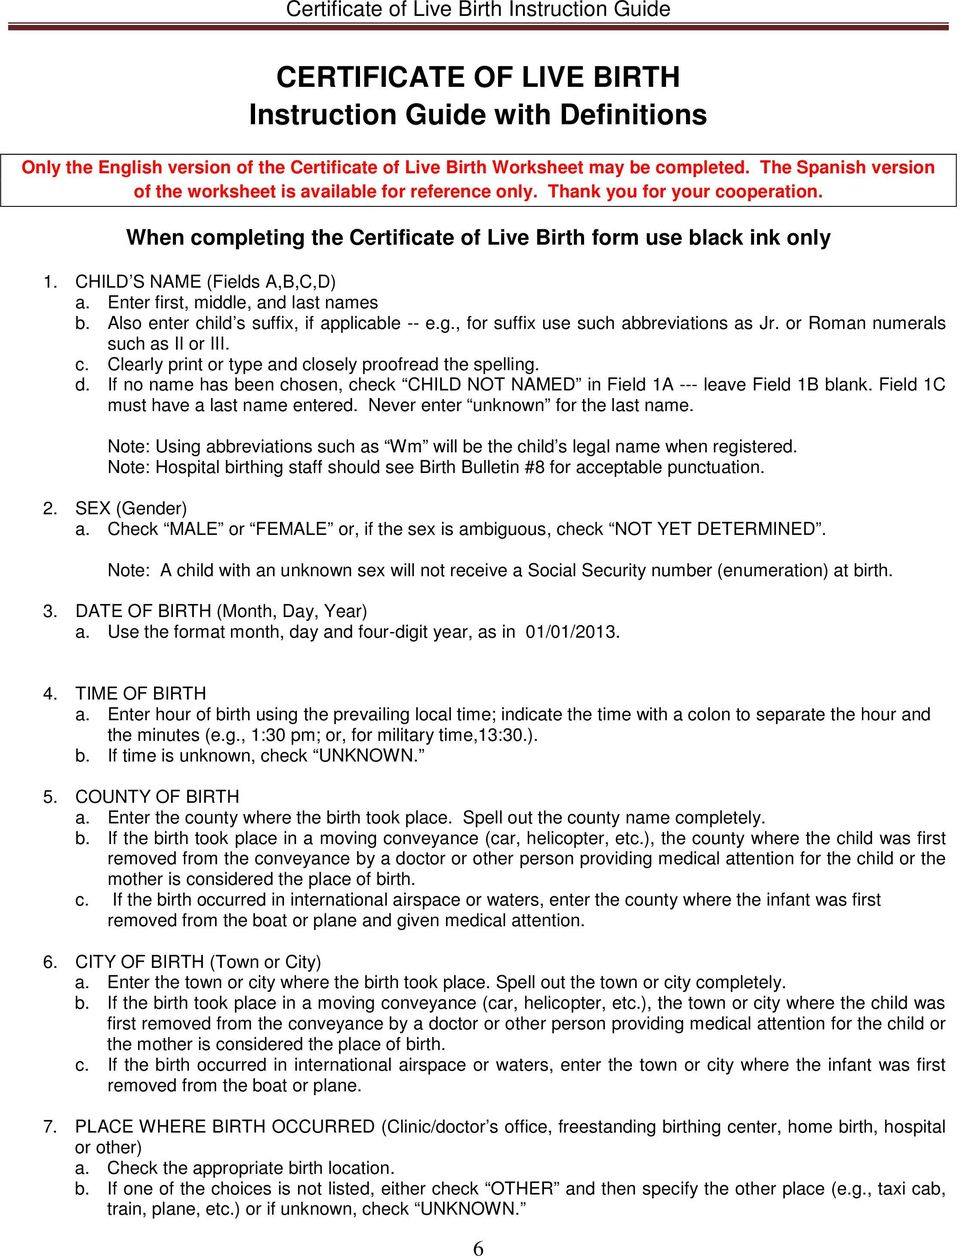 The Certificate Of Live Birth Worksheet Pdf